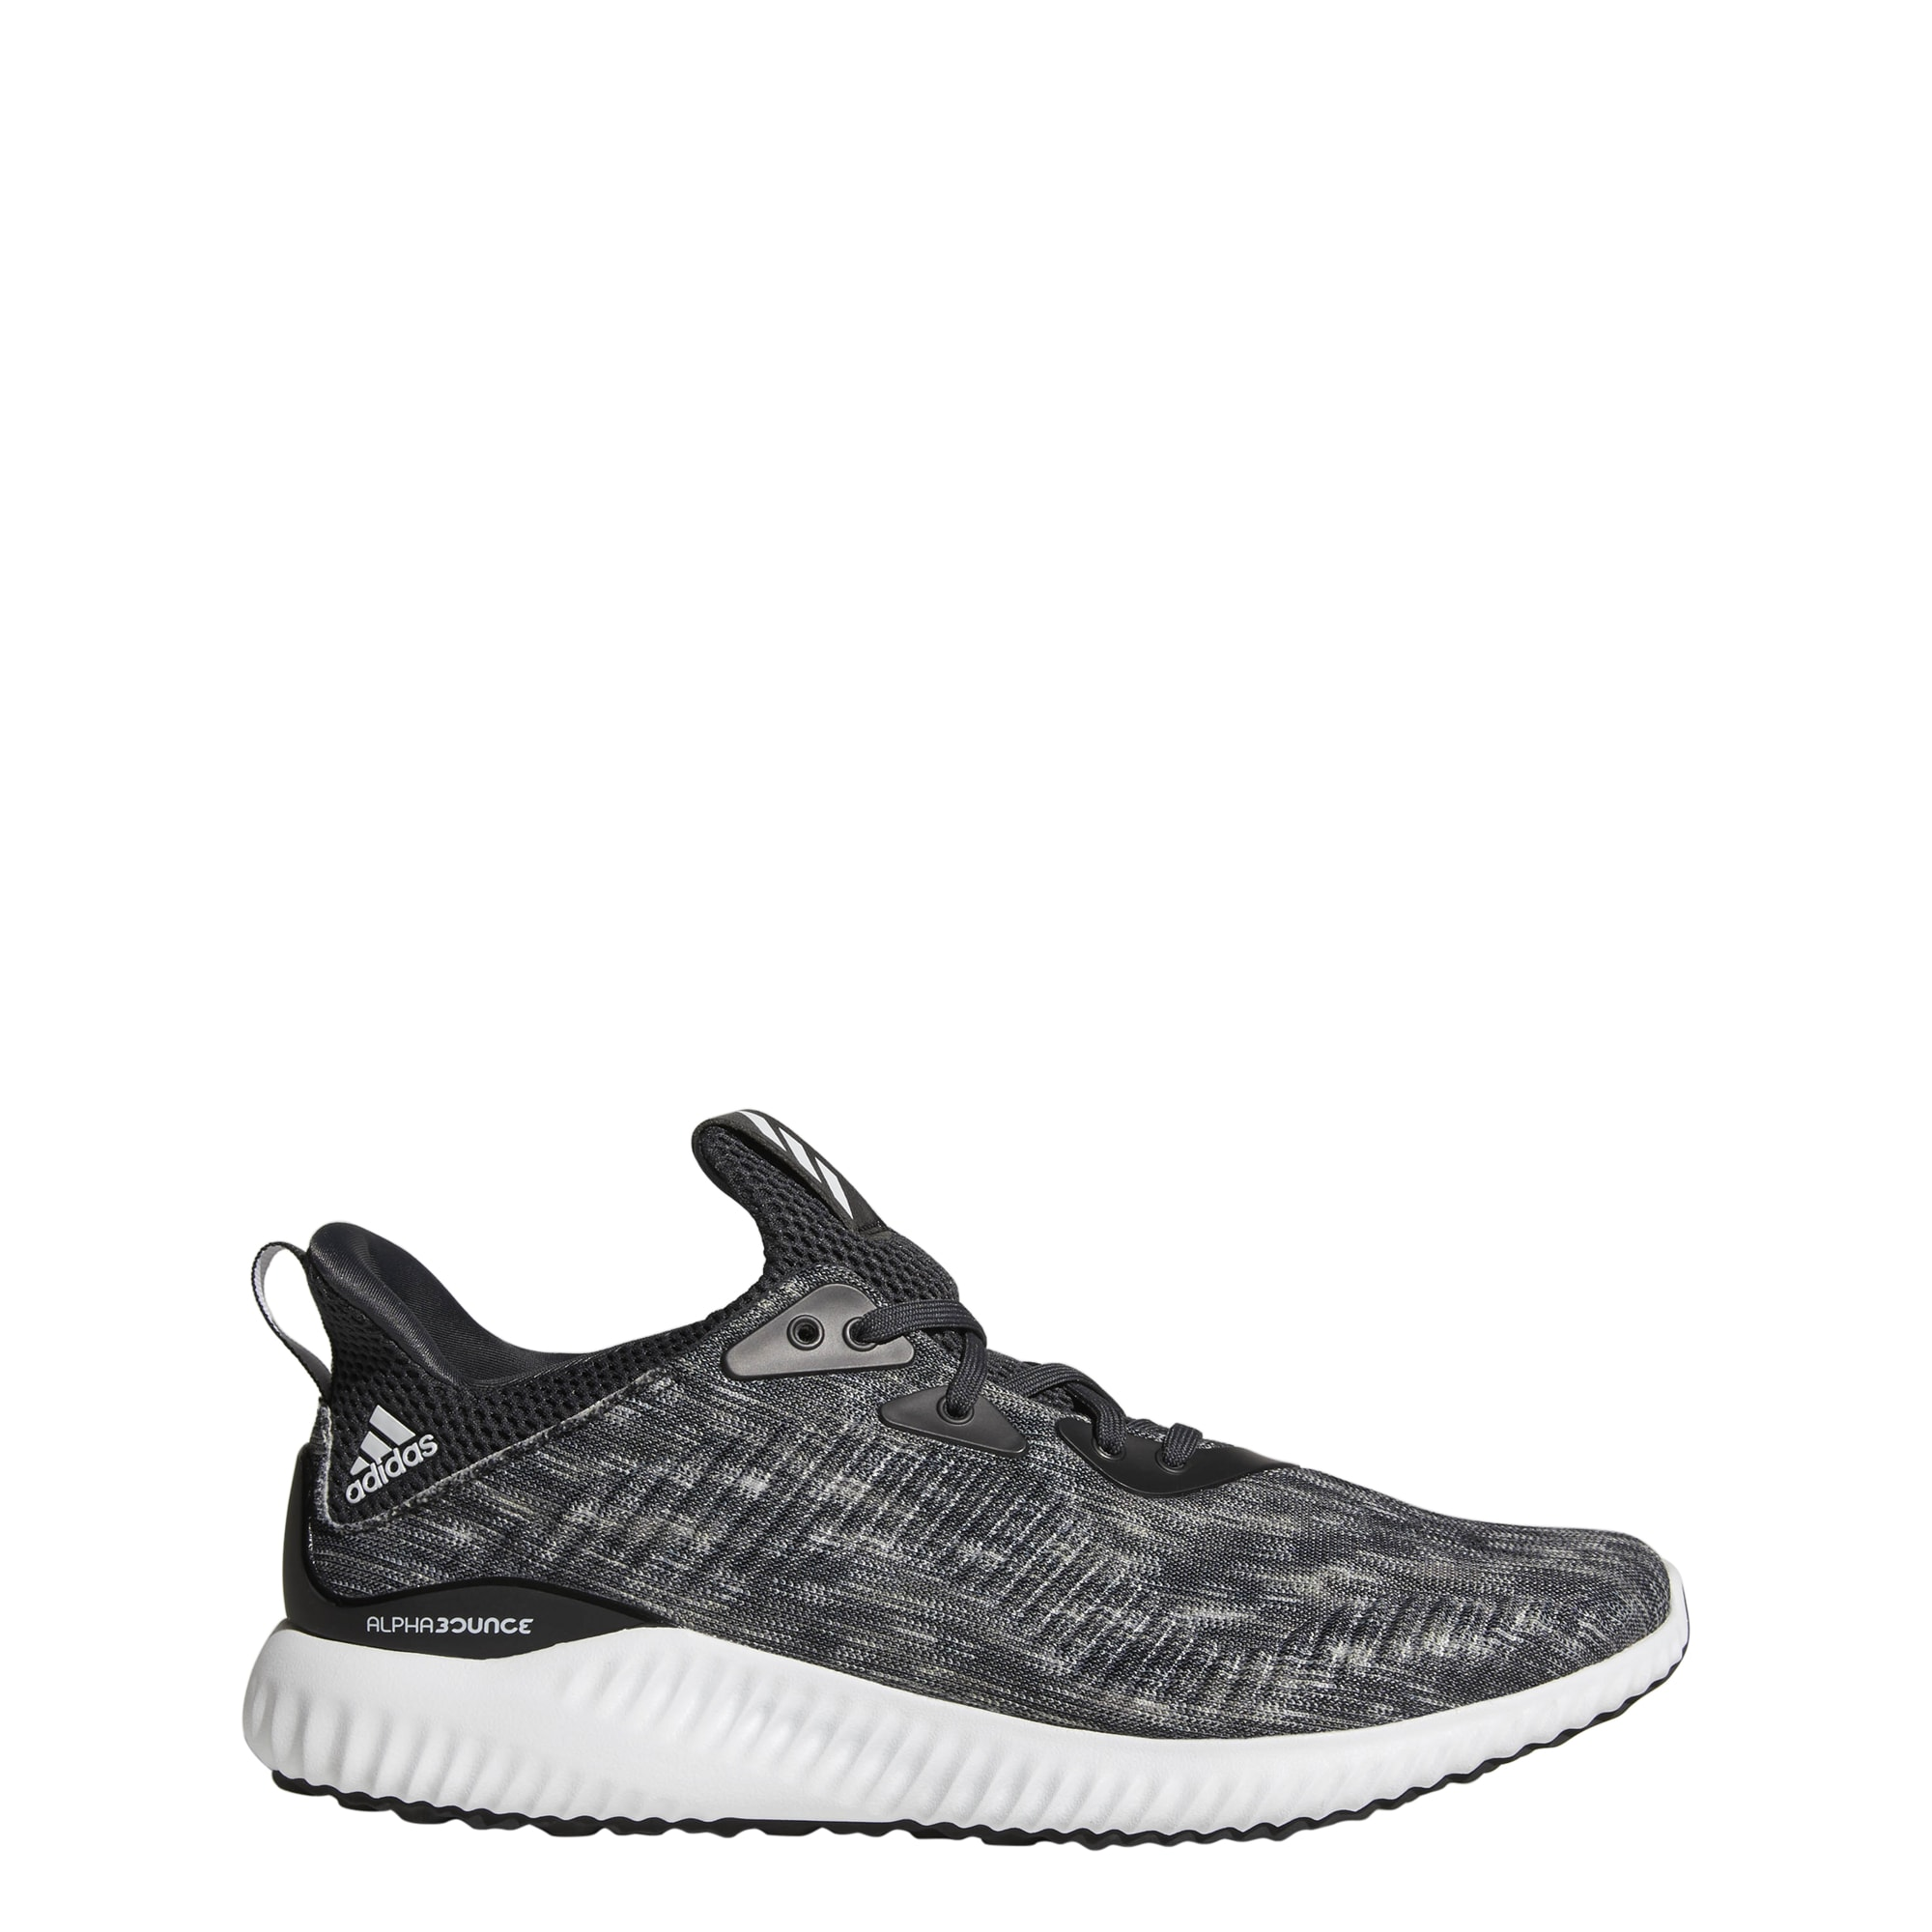 new product c2cc8 45908 Adidas Alphabounce - Core Black - Tights.no